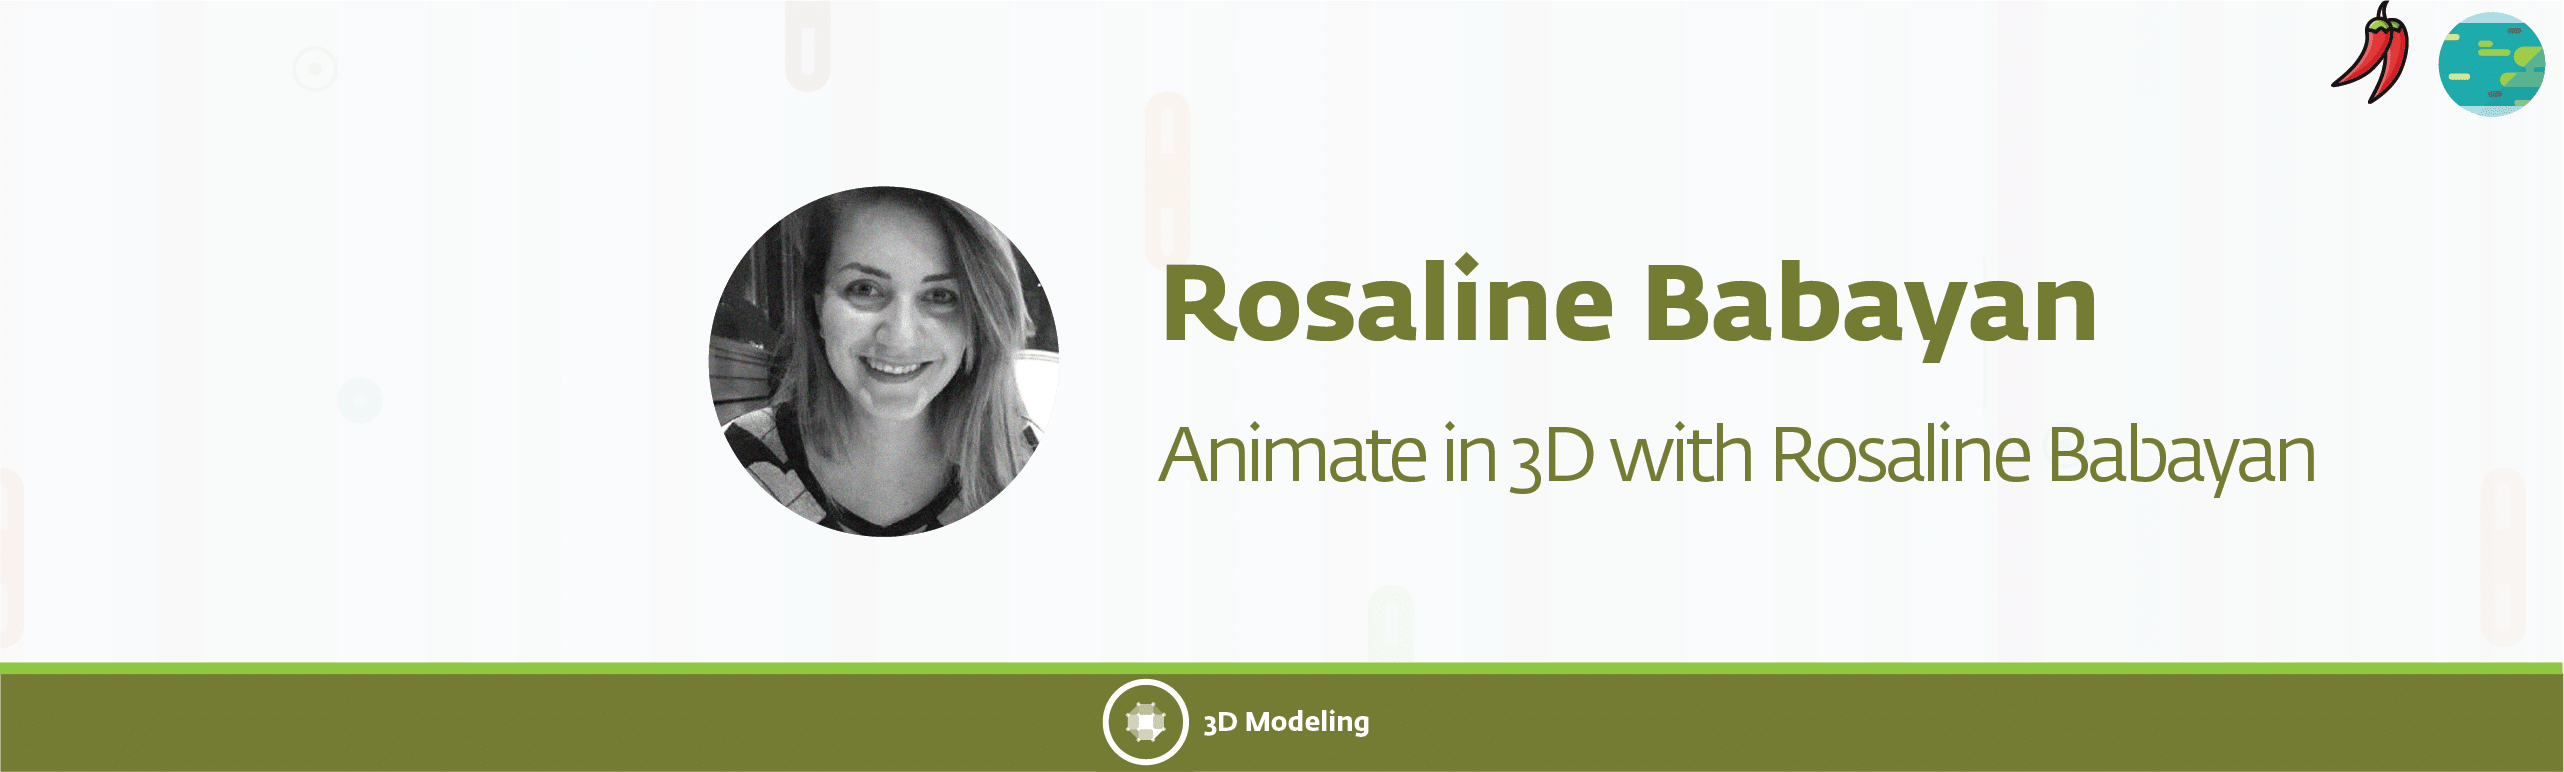 rosaline banner 36 - Animate in 3D with Rosaline Babayan